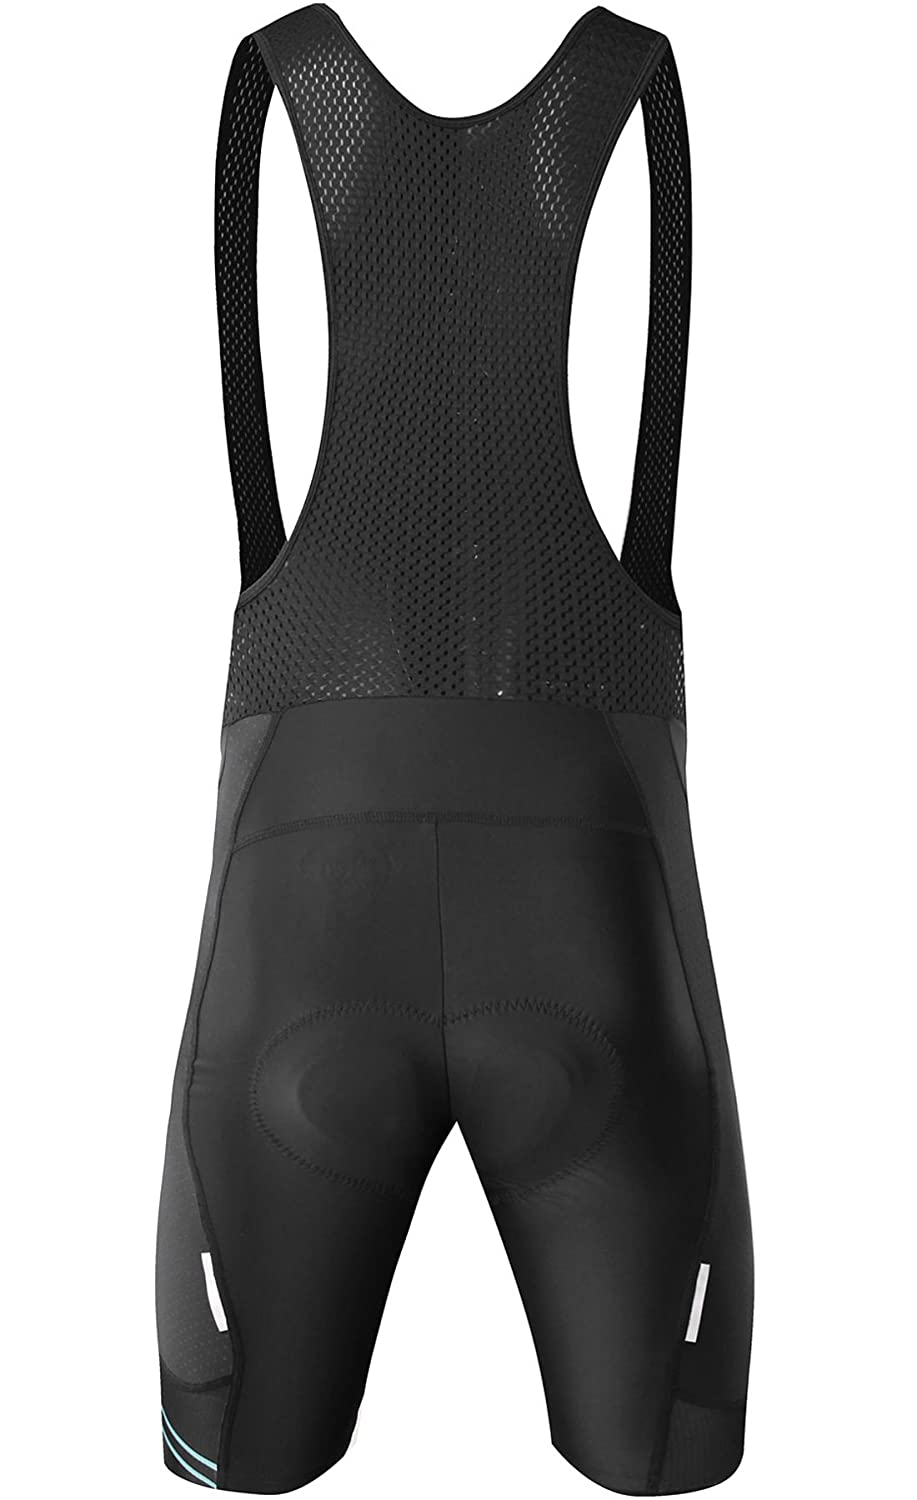 Amazon.com   NOOYME Padded Cycling Bib Shorts for Men and Women   Sports    Outdoors f2a2639df